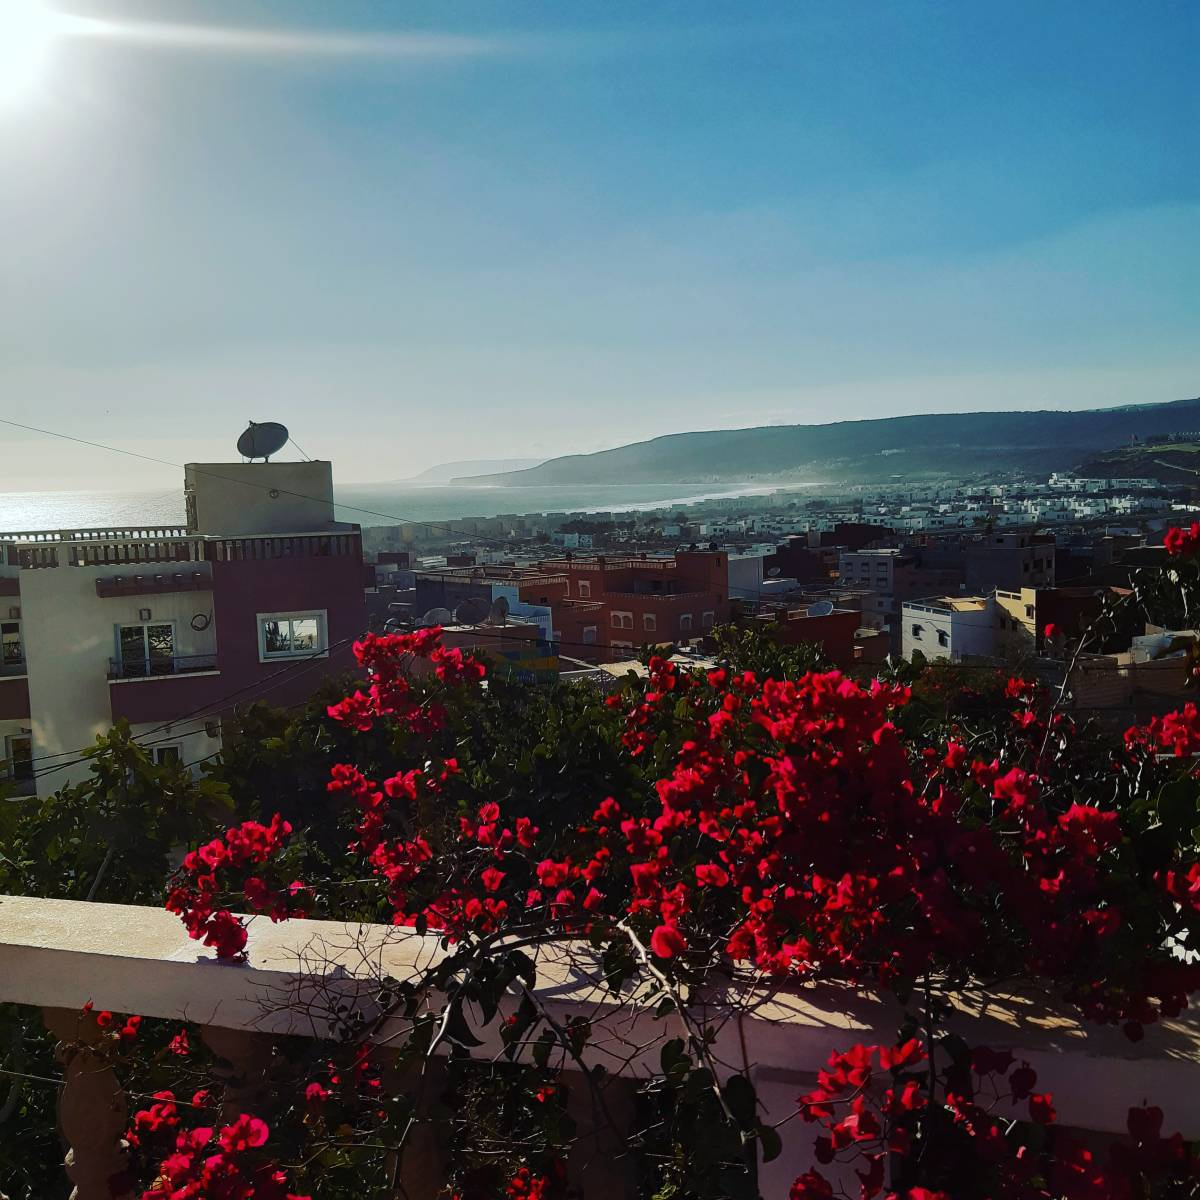 Eden Blue, Tamraght Ou Fella, Morocco, hostels for christmas markets and winter vacations in Tamraght Ou Fella